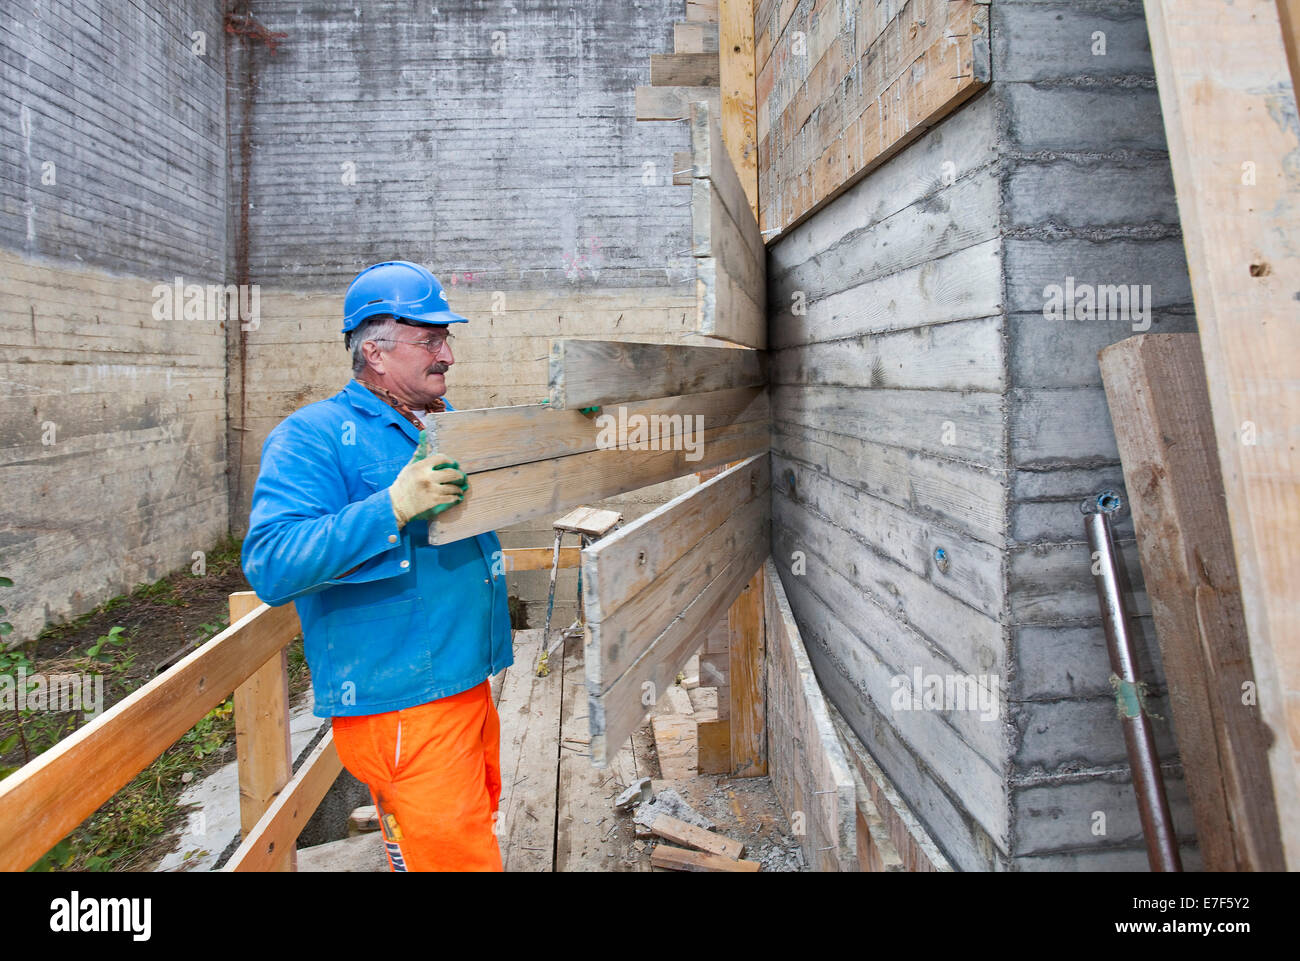 Man doing concrete restoration and construction work on the main building of the HSG University of St. Gallen, Switzerland - Stock Image